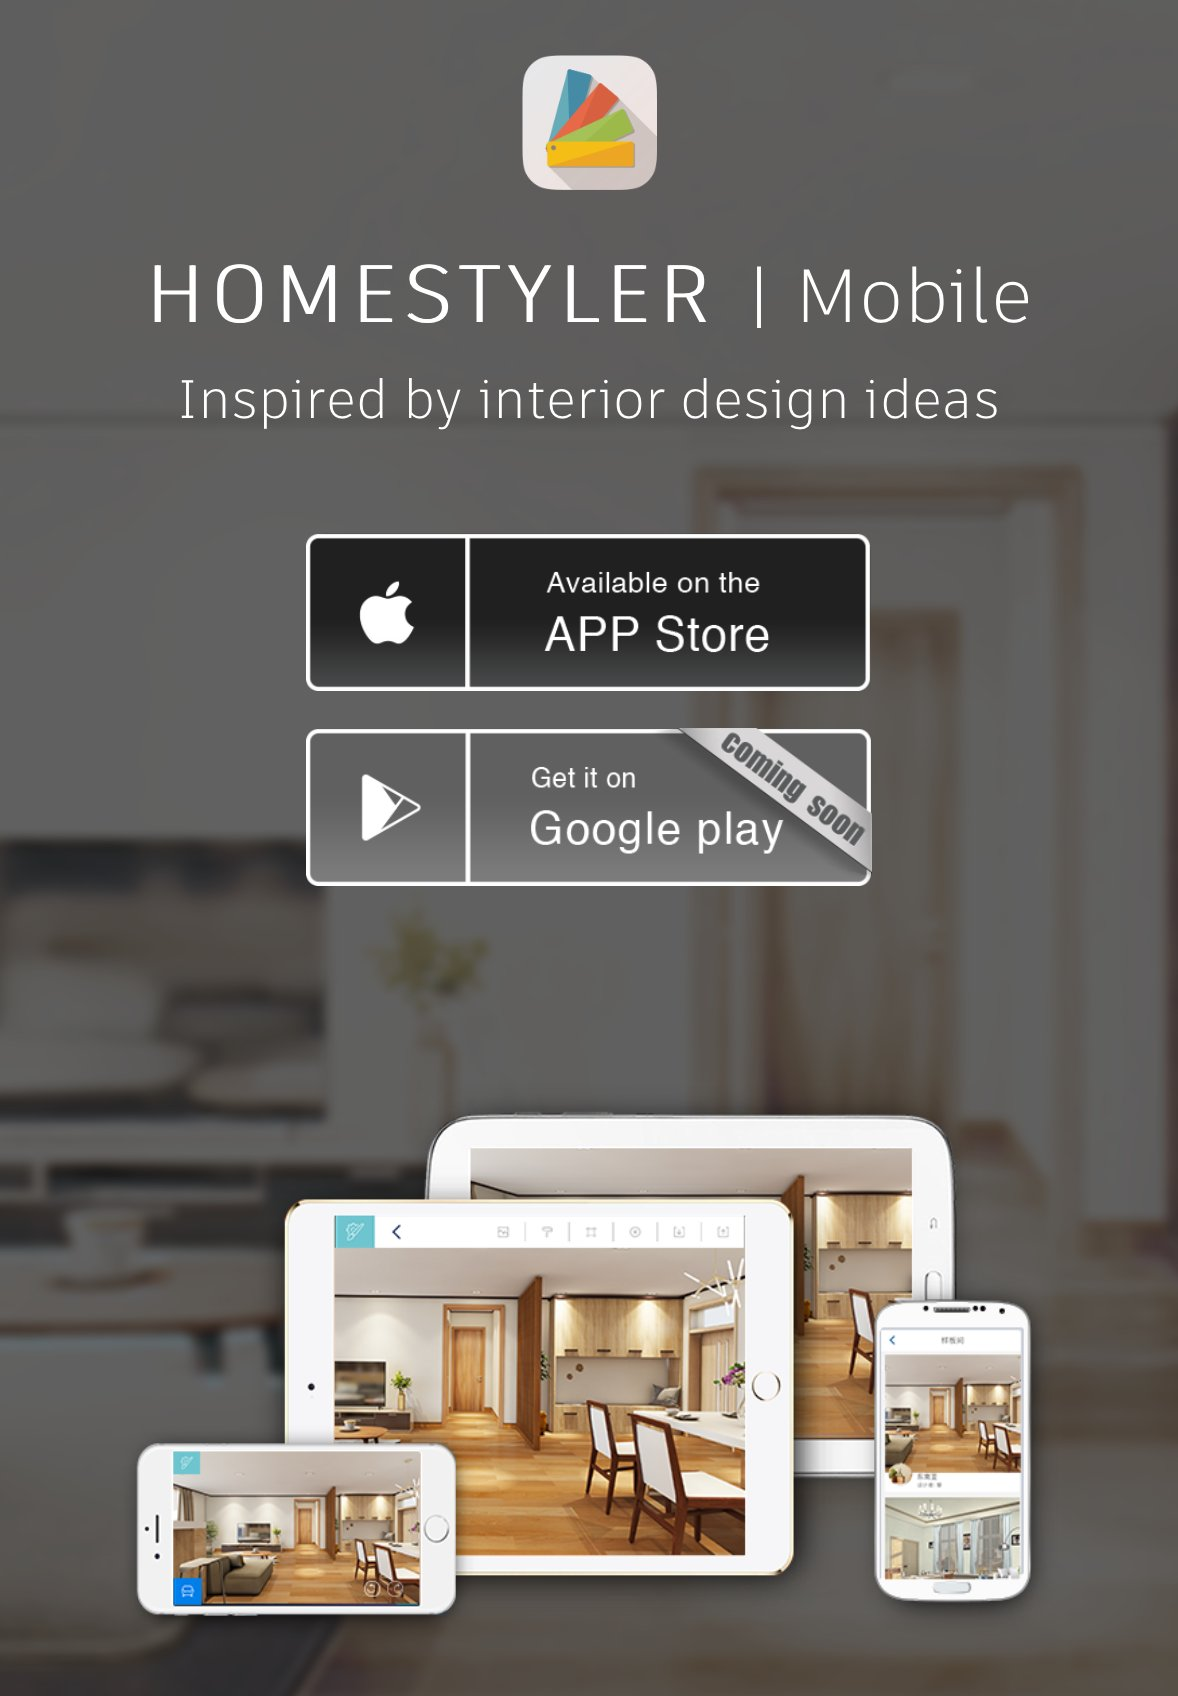 homestyler old version